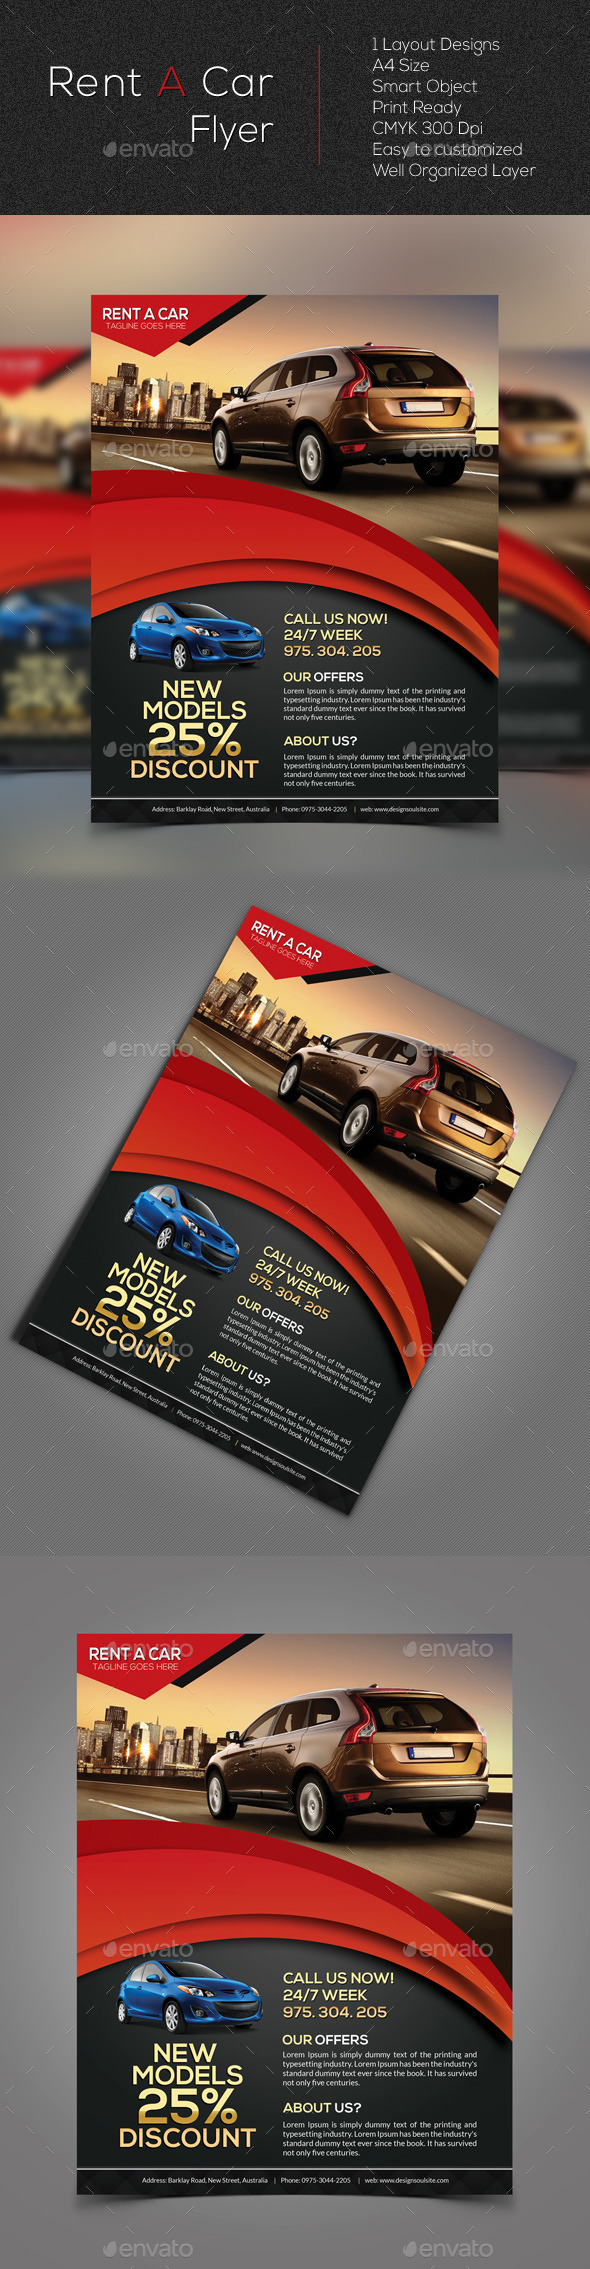 GraphicRiver Rent A Car Flyer 10617342